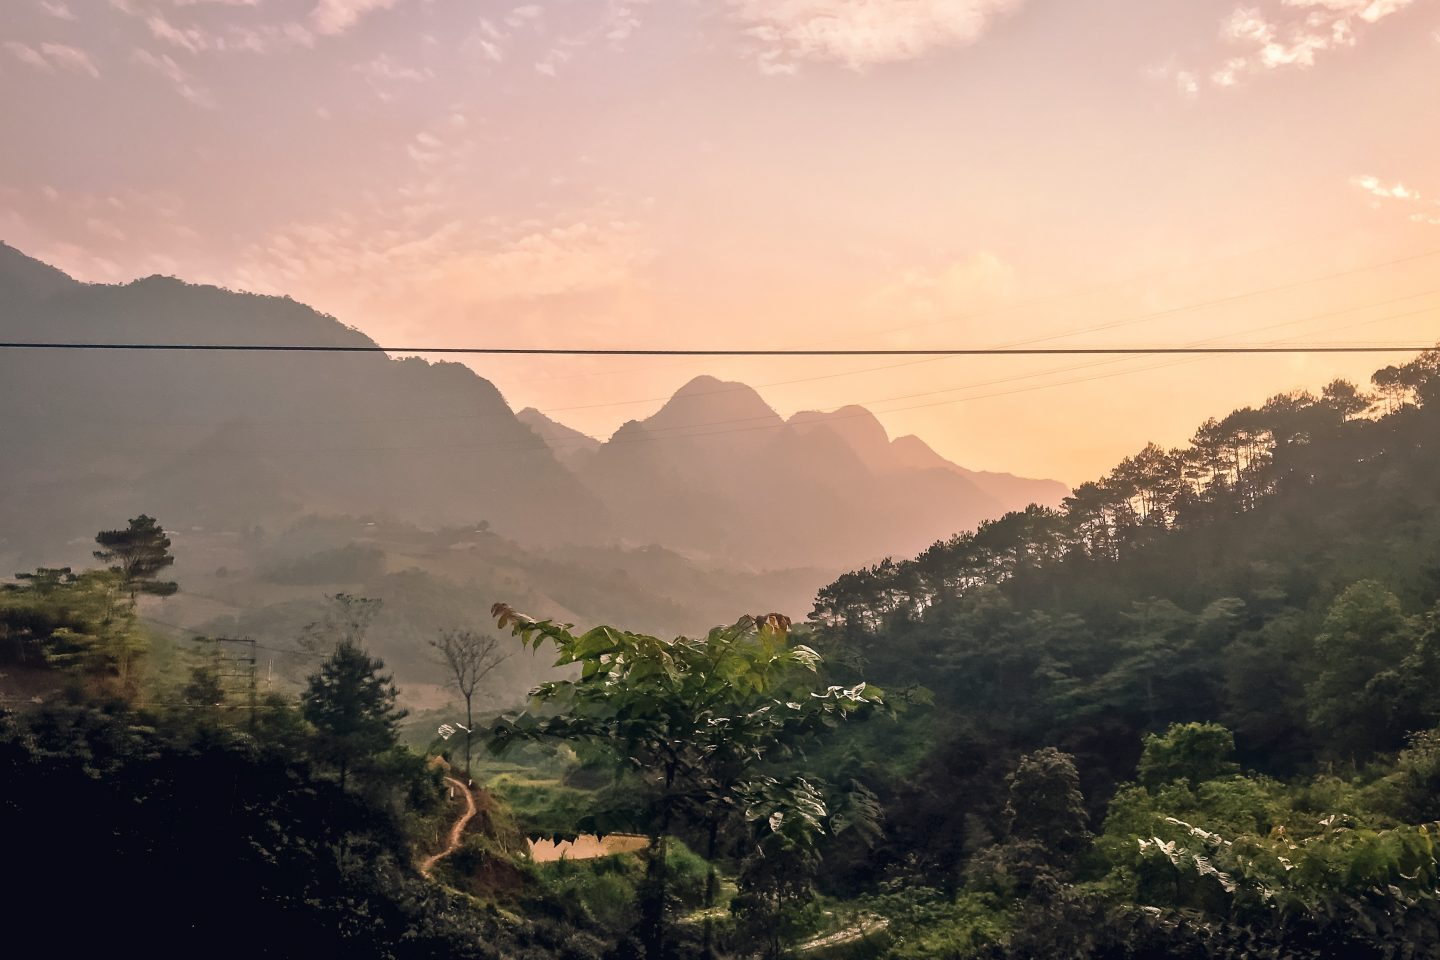 Sunset over the mountains in North Vietnam